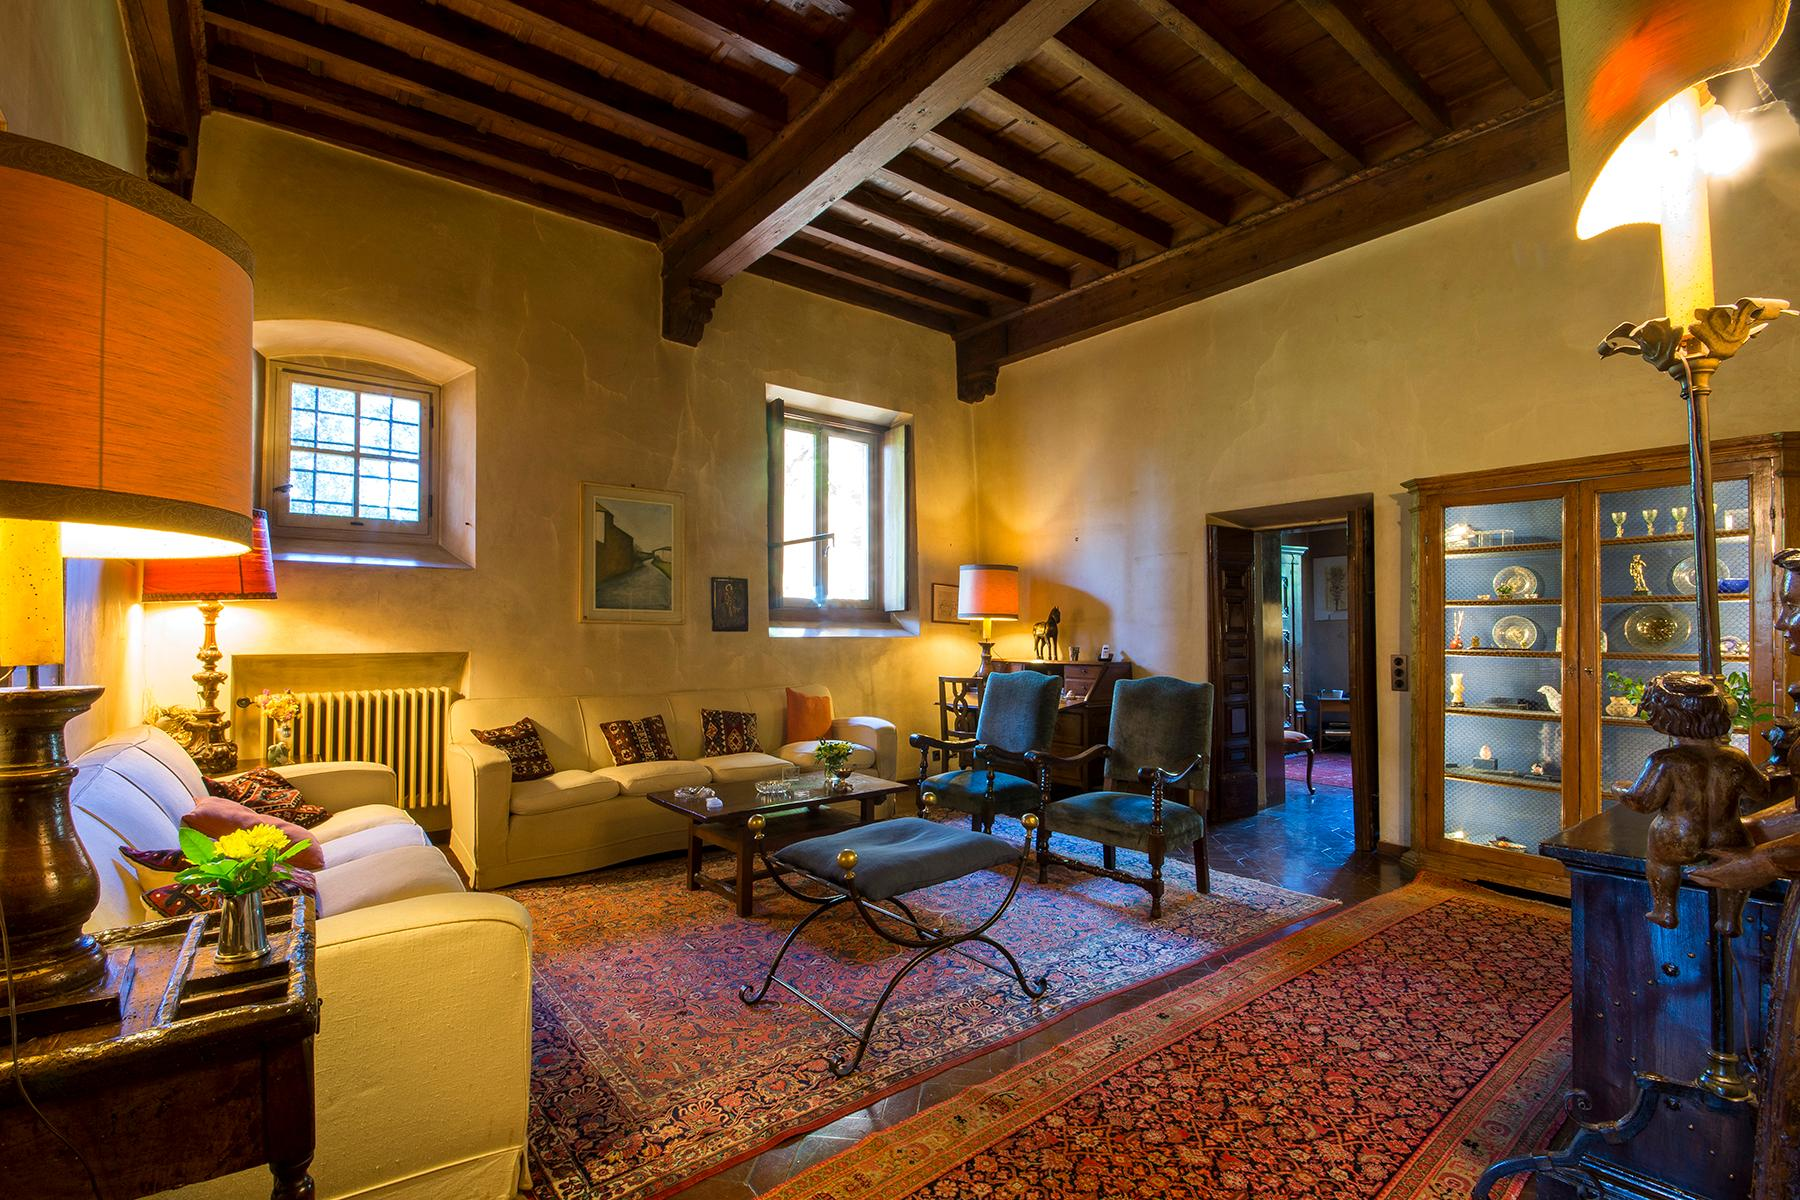 Wonderful villa along the hills of Florence - 2